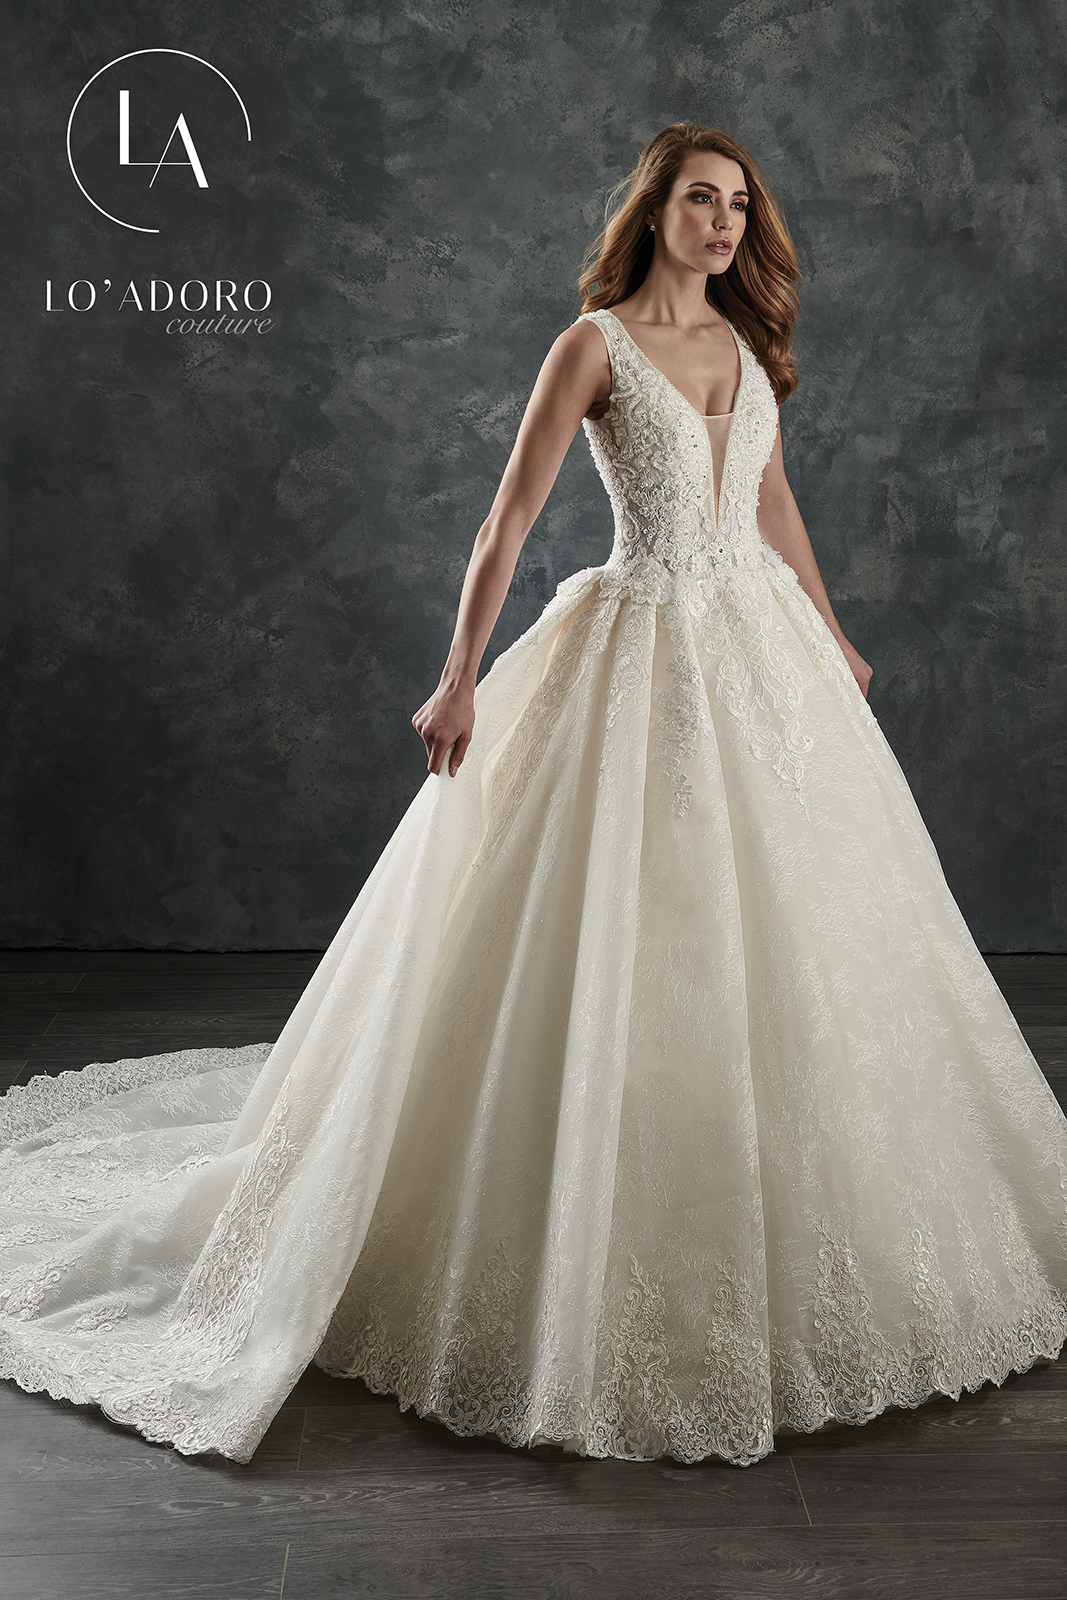 V-Neck Ball Gowns Lo' Adoro Couture BRIDAL in Ivory Color